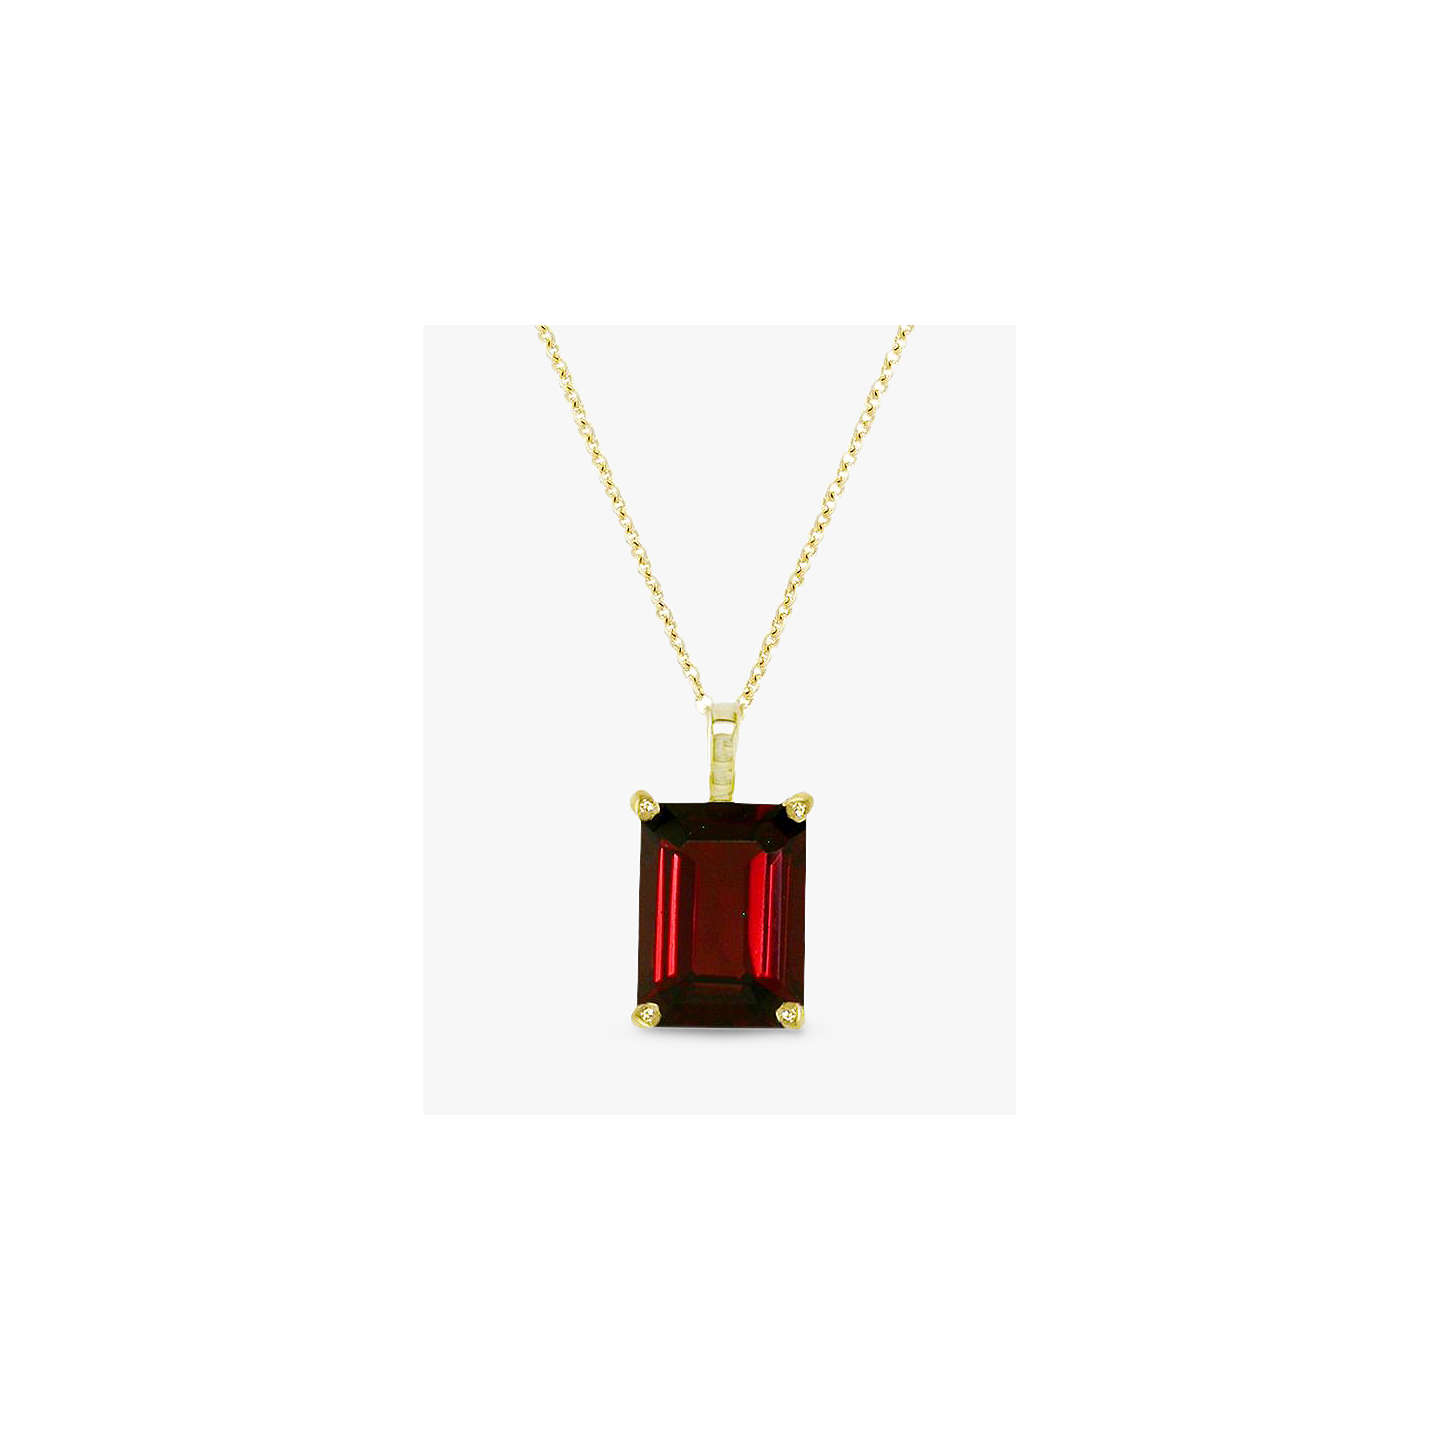 Ewa 9ct gold garnet pendant necklace red at john lewis buyewa 9ct gold garnet pendant necklace red online at johnlewis mozeypictures Gallery